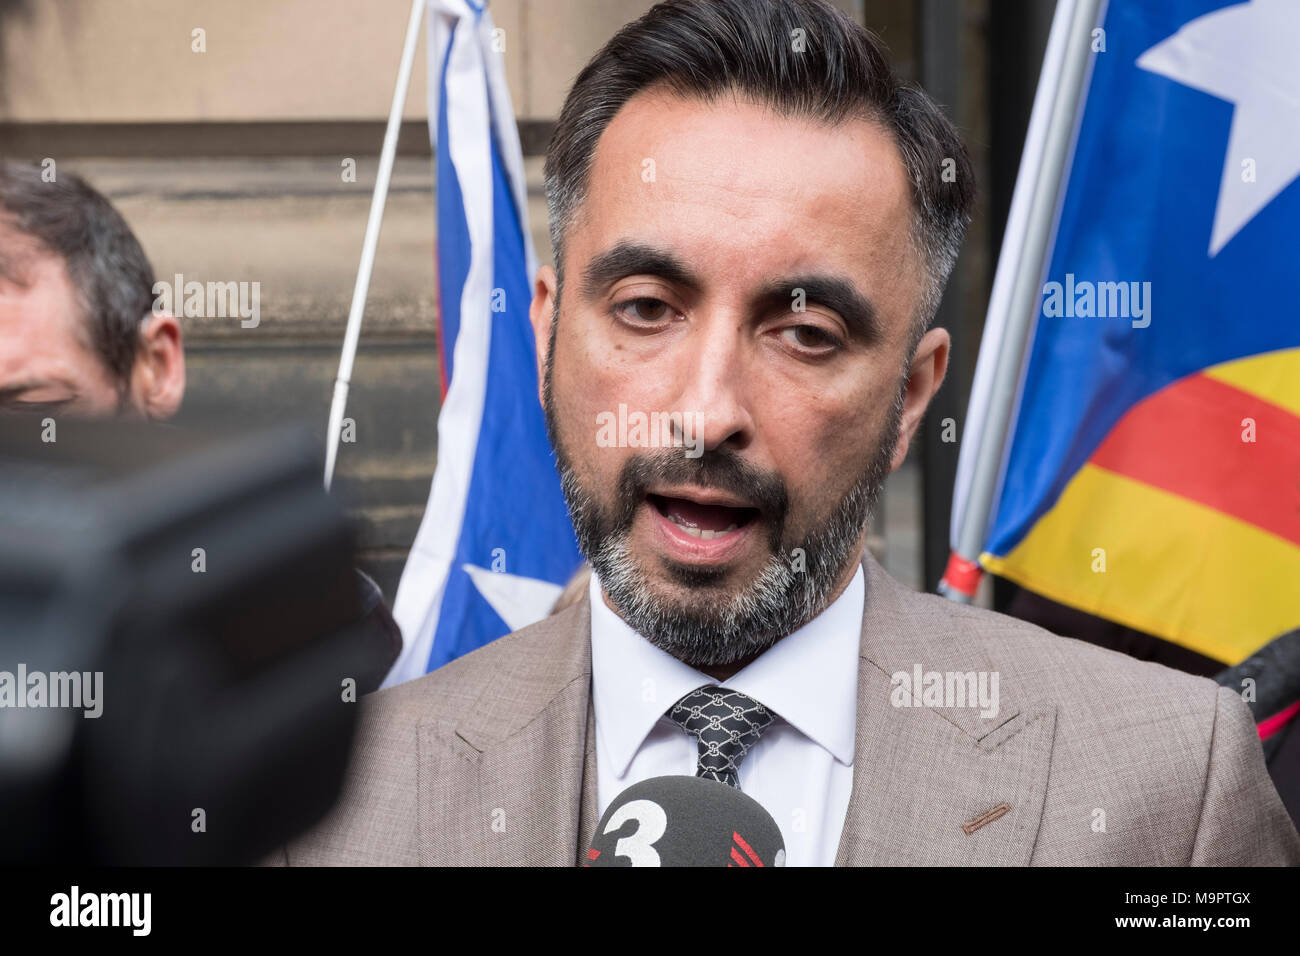 Edinburgh, Scotland,UK. 28 March 2018. Aamer Anwar , lawyer acting for Clara Ponsati Catalonia former Education Minister, talks to the press outside Edinburgh Sheriff Court had of her hearing . She face extradition to Spain. Credit: Iain Masterton/Alamy Live News - Stock Image